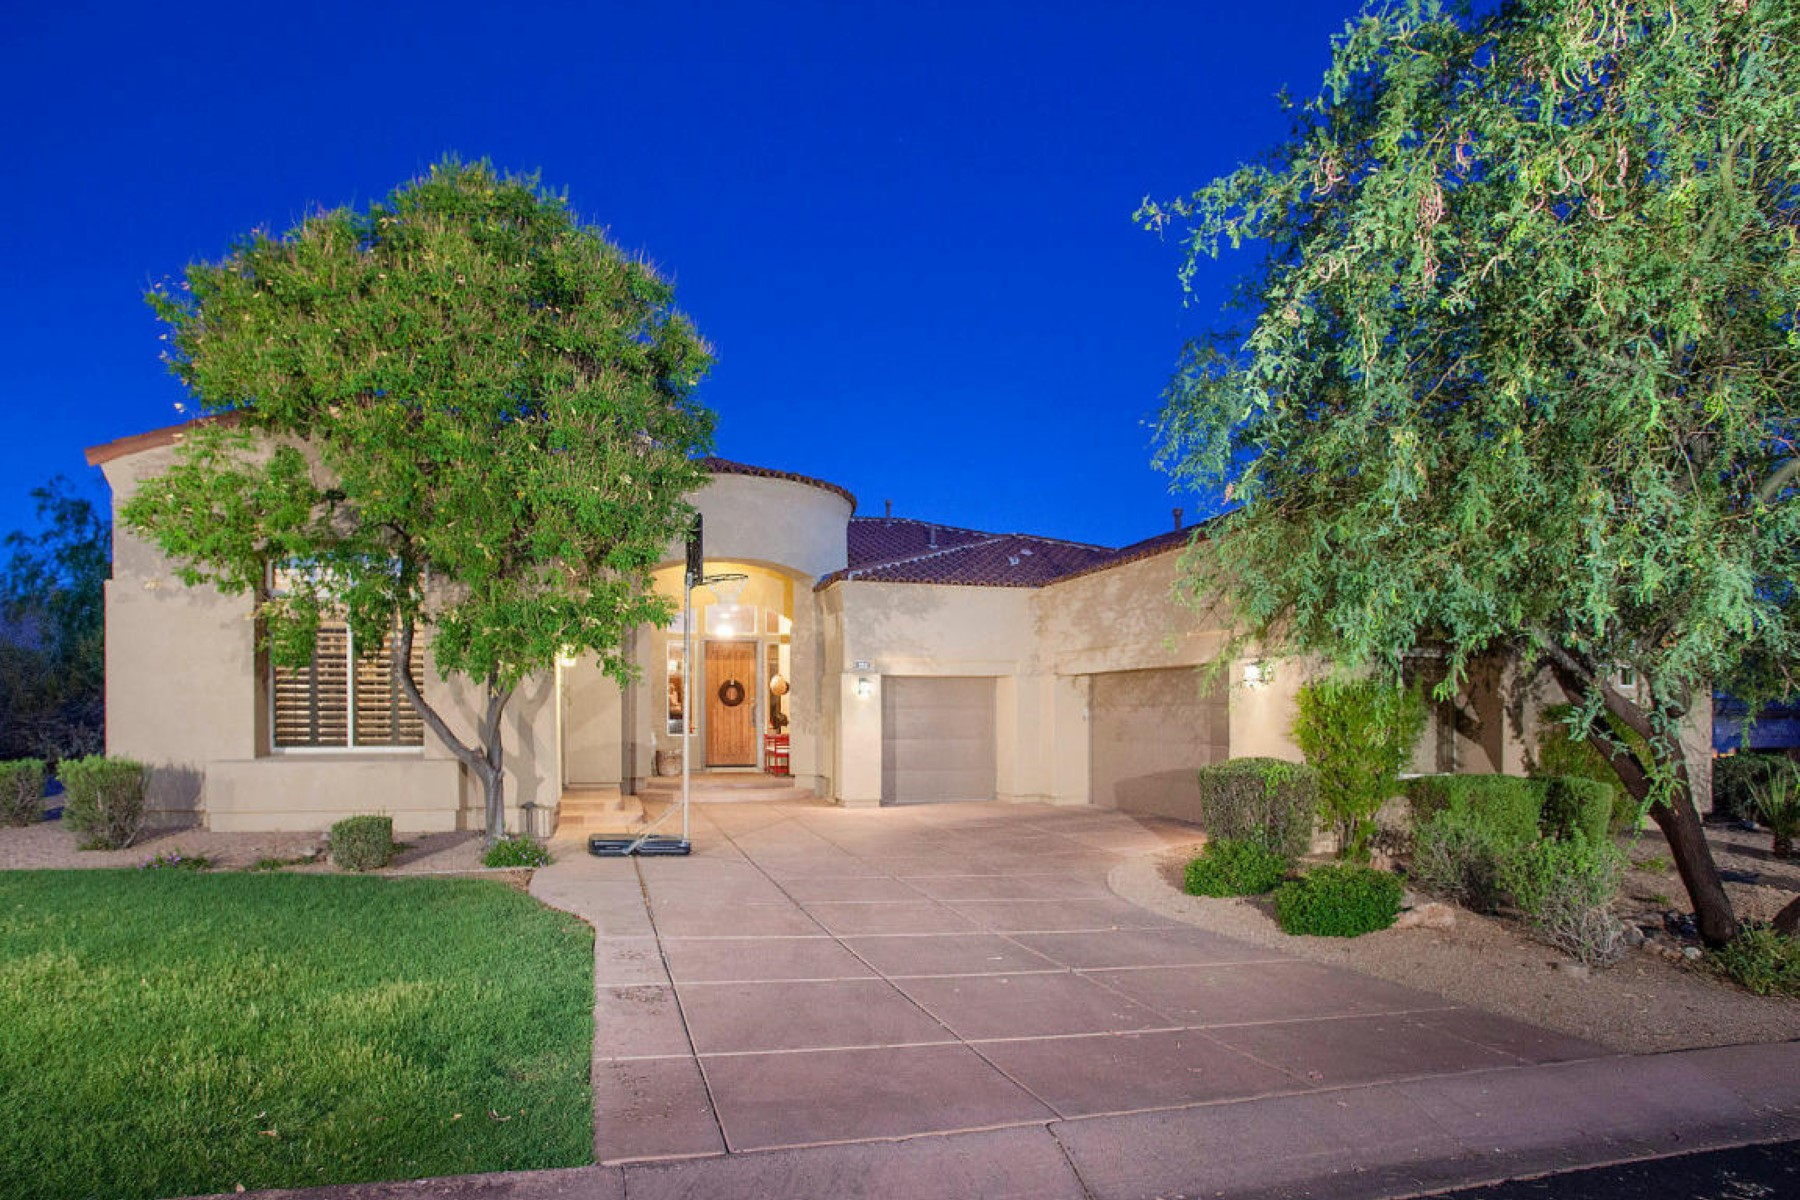 Moradia para Venda às Incredible tasteful remodeled home in the Country Club at DC Ranch 9290 E Thompson Peak #252 Scottsdale, Arizona, 85255 Estados Unidos